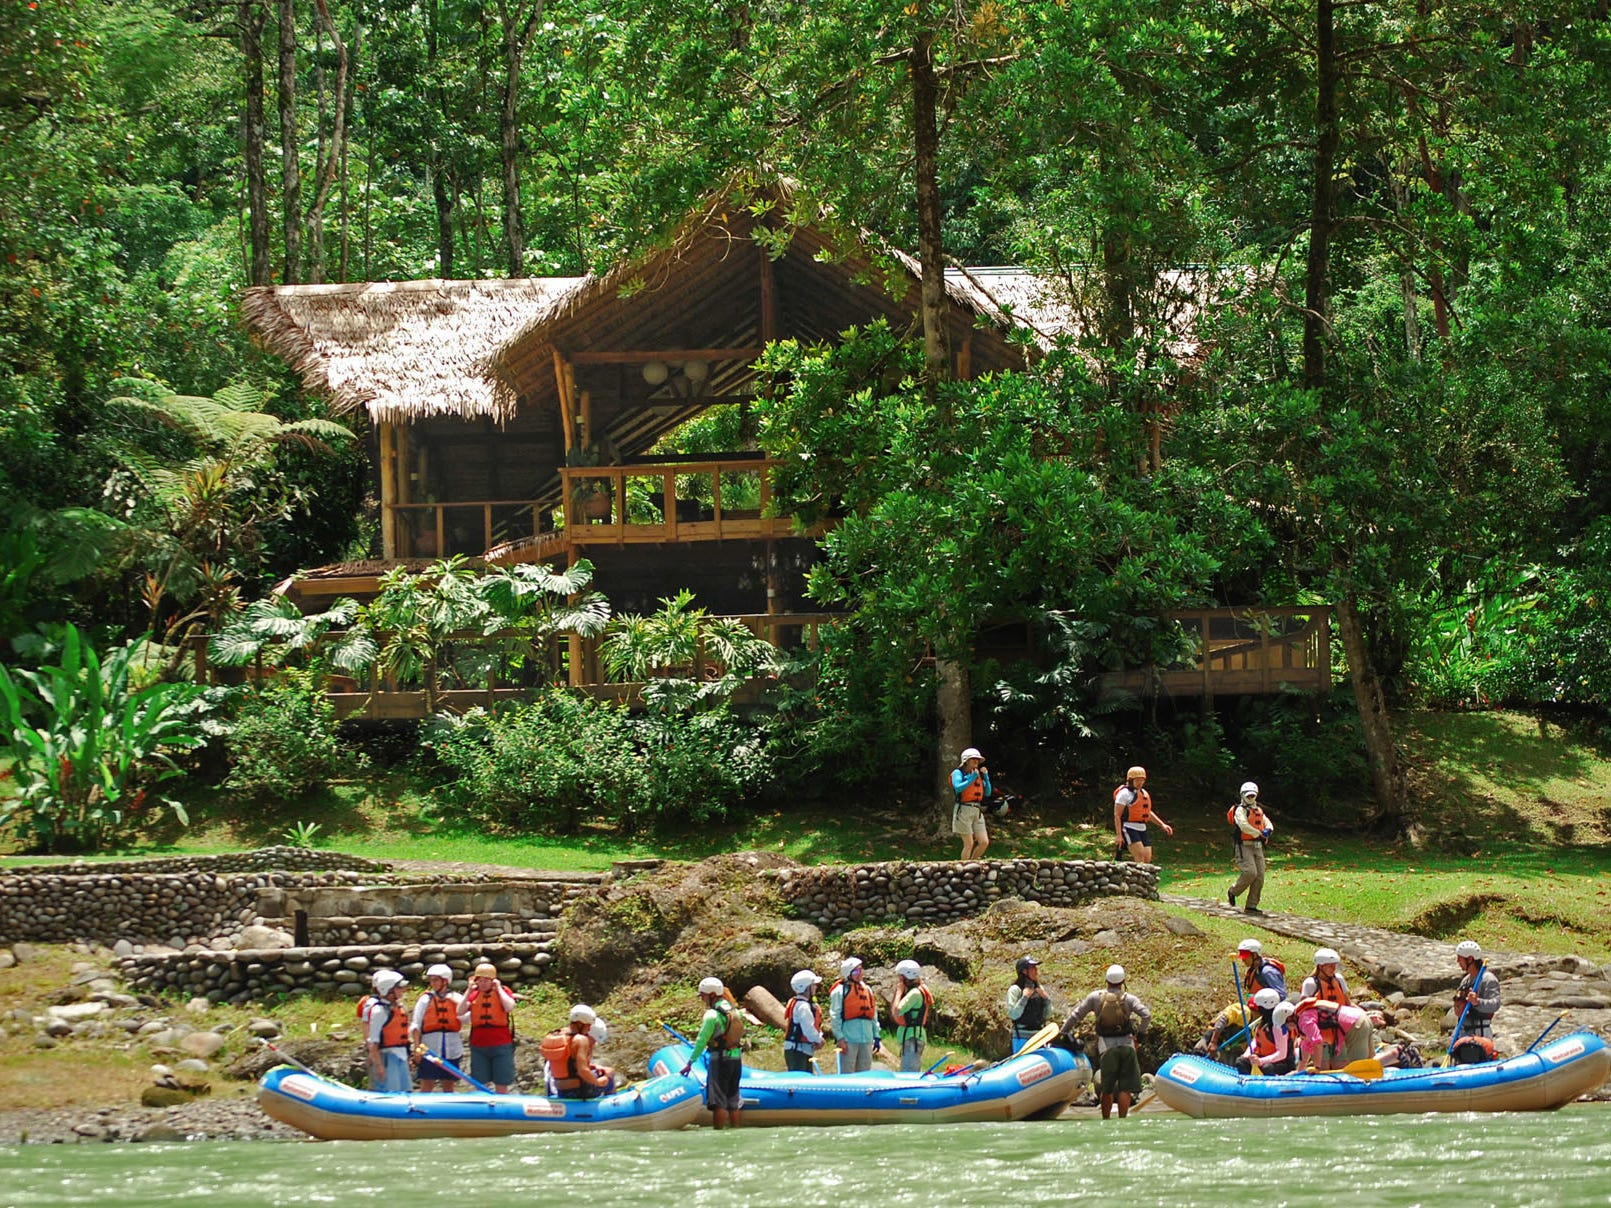 Pacuare Lodge is family-friendly up to a point: Guests need to be seven or older to stay at the lodge and 12 or older to join one of the rafting excursions.